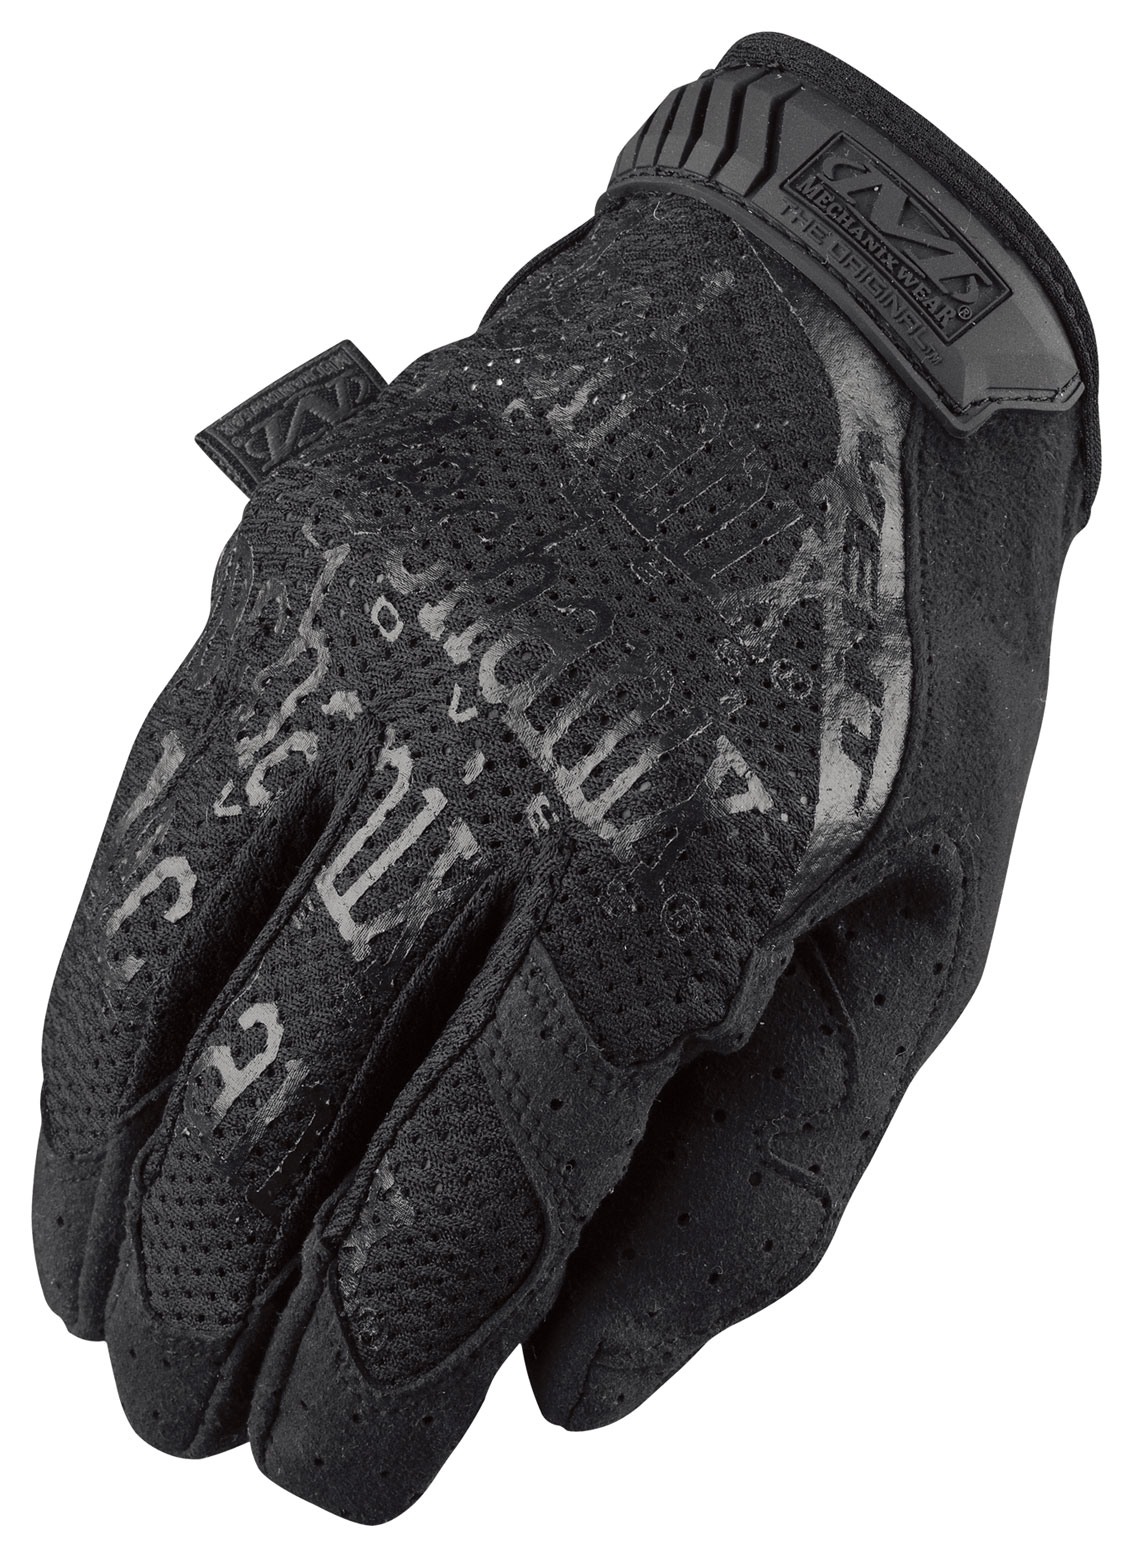 MECHANIXWEAR ORIGINAL GLOVE COVERT